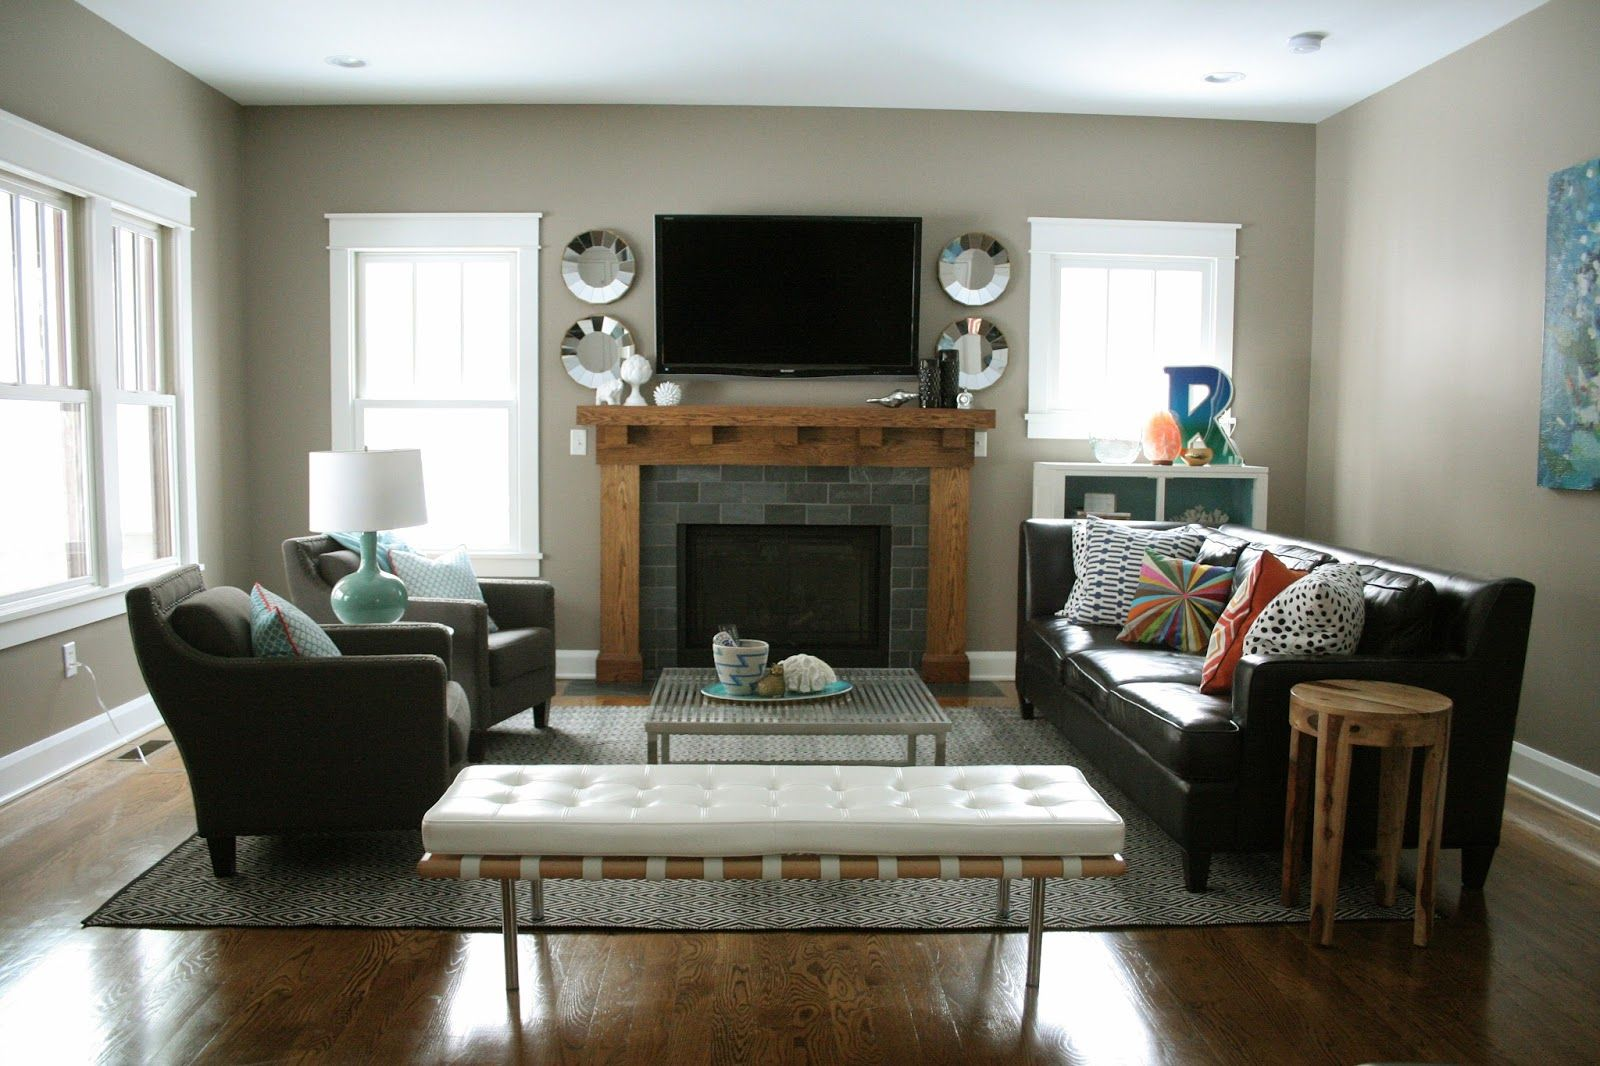 Living Room Setup With Fireplace